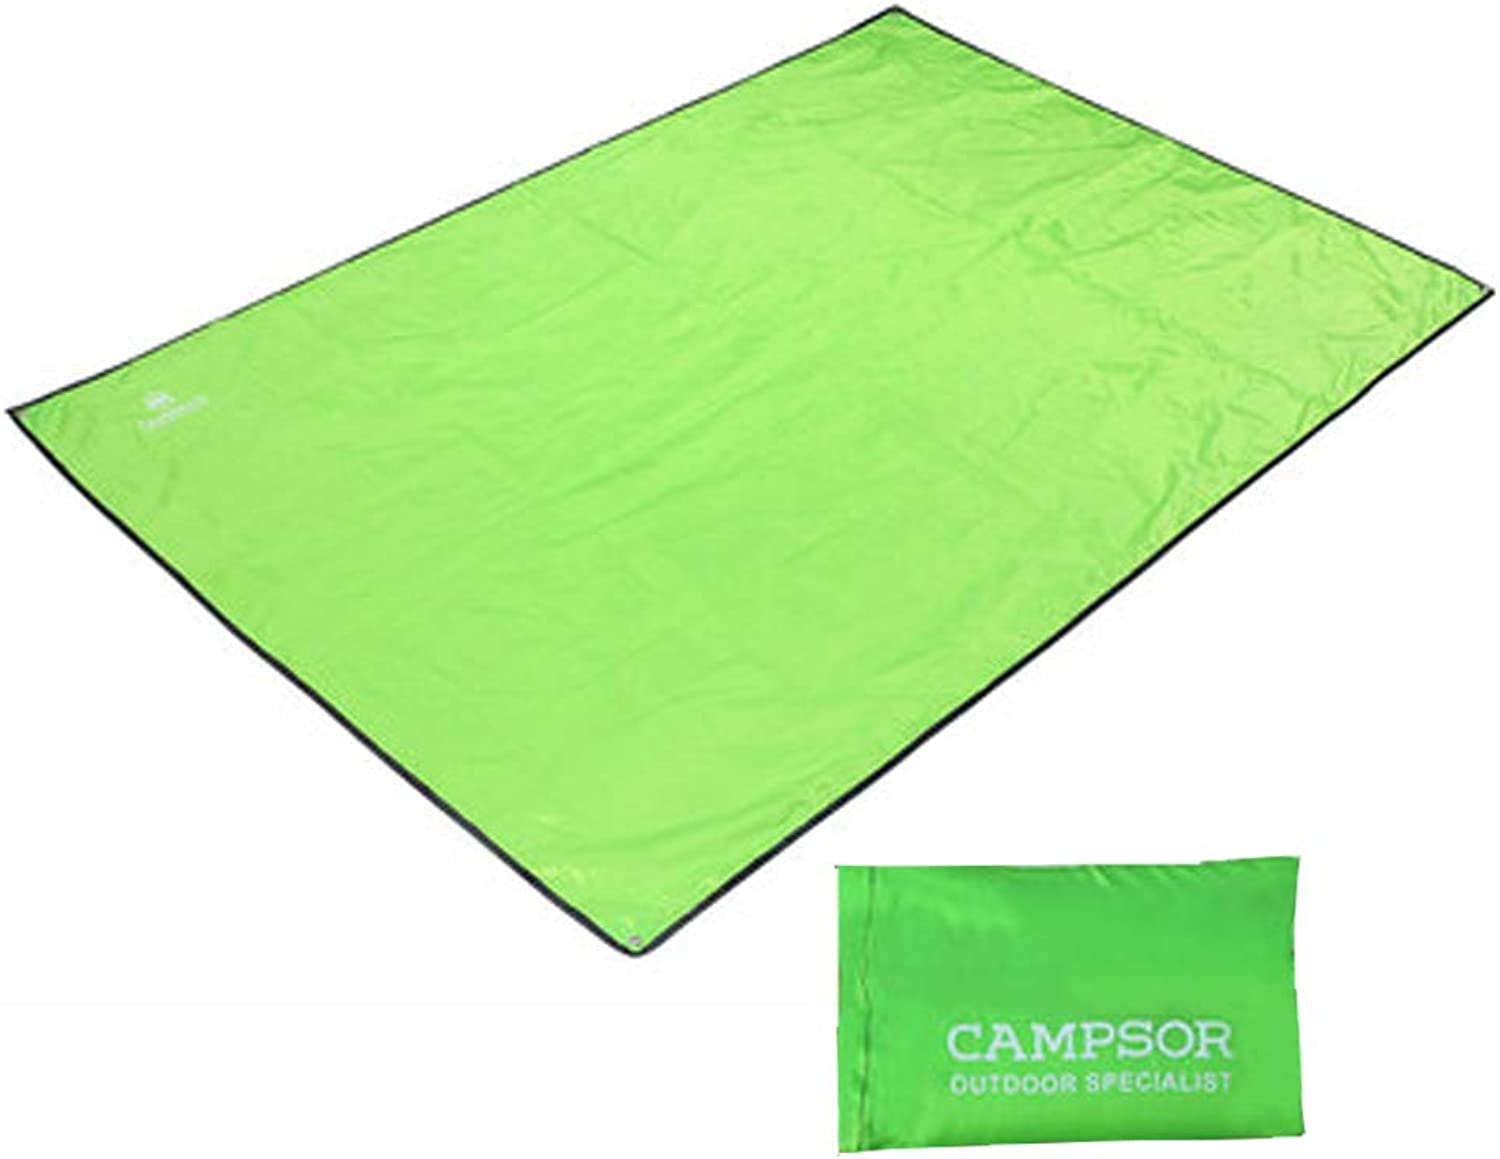 Travel Picnic Mat Large Portable Beach Blanket Waterproof Oxford for Outdoor Camping Park Lawn Hiking Backpacking